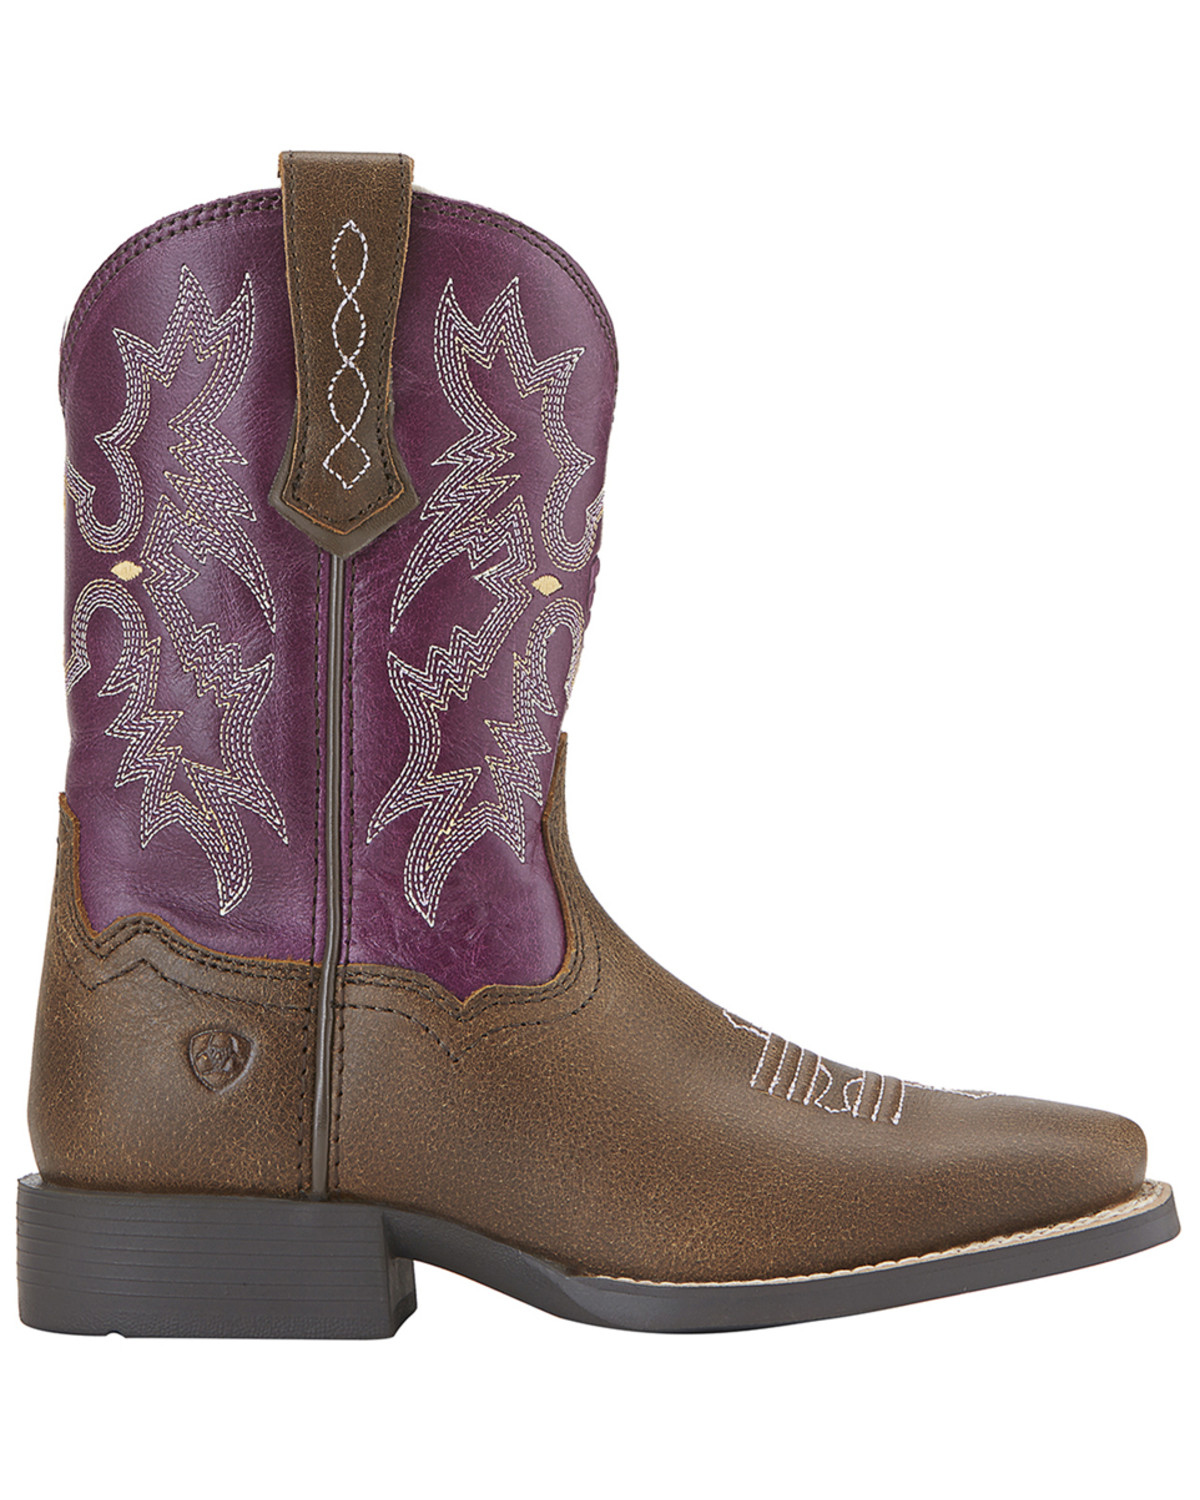 Ariat Youth Girls' Tombstone Boots - Square Toe | Sheplers